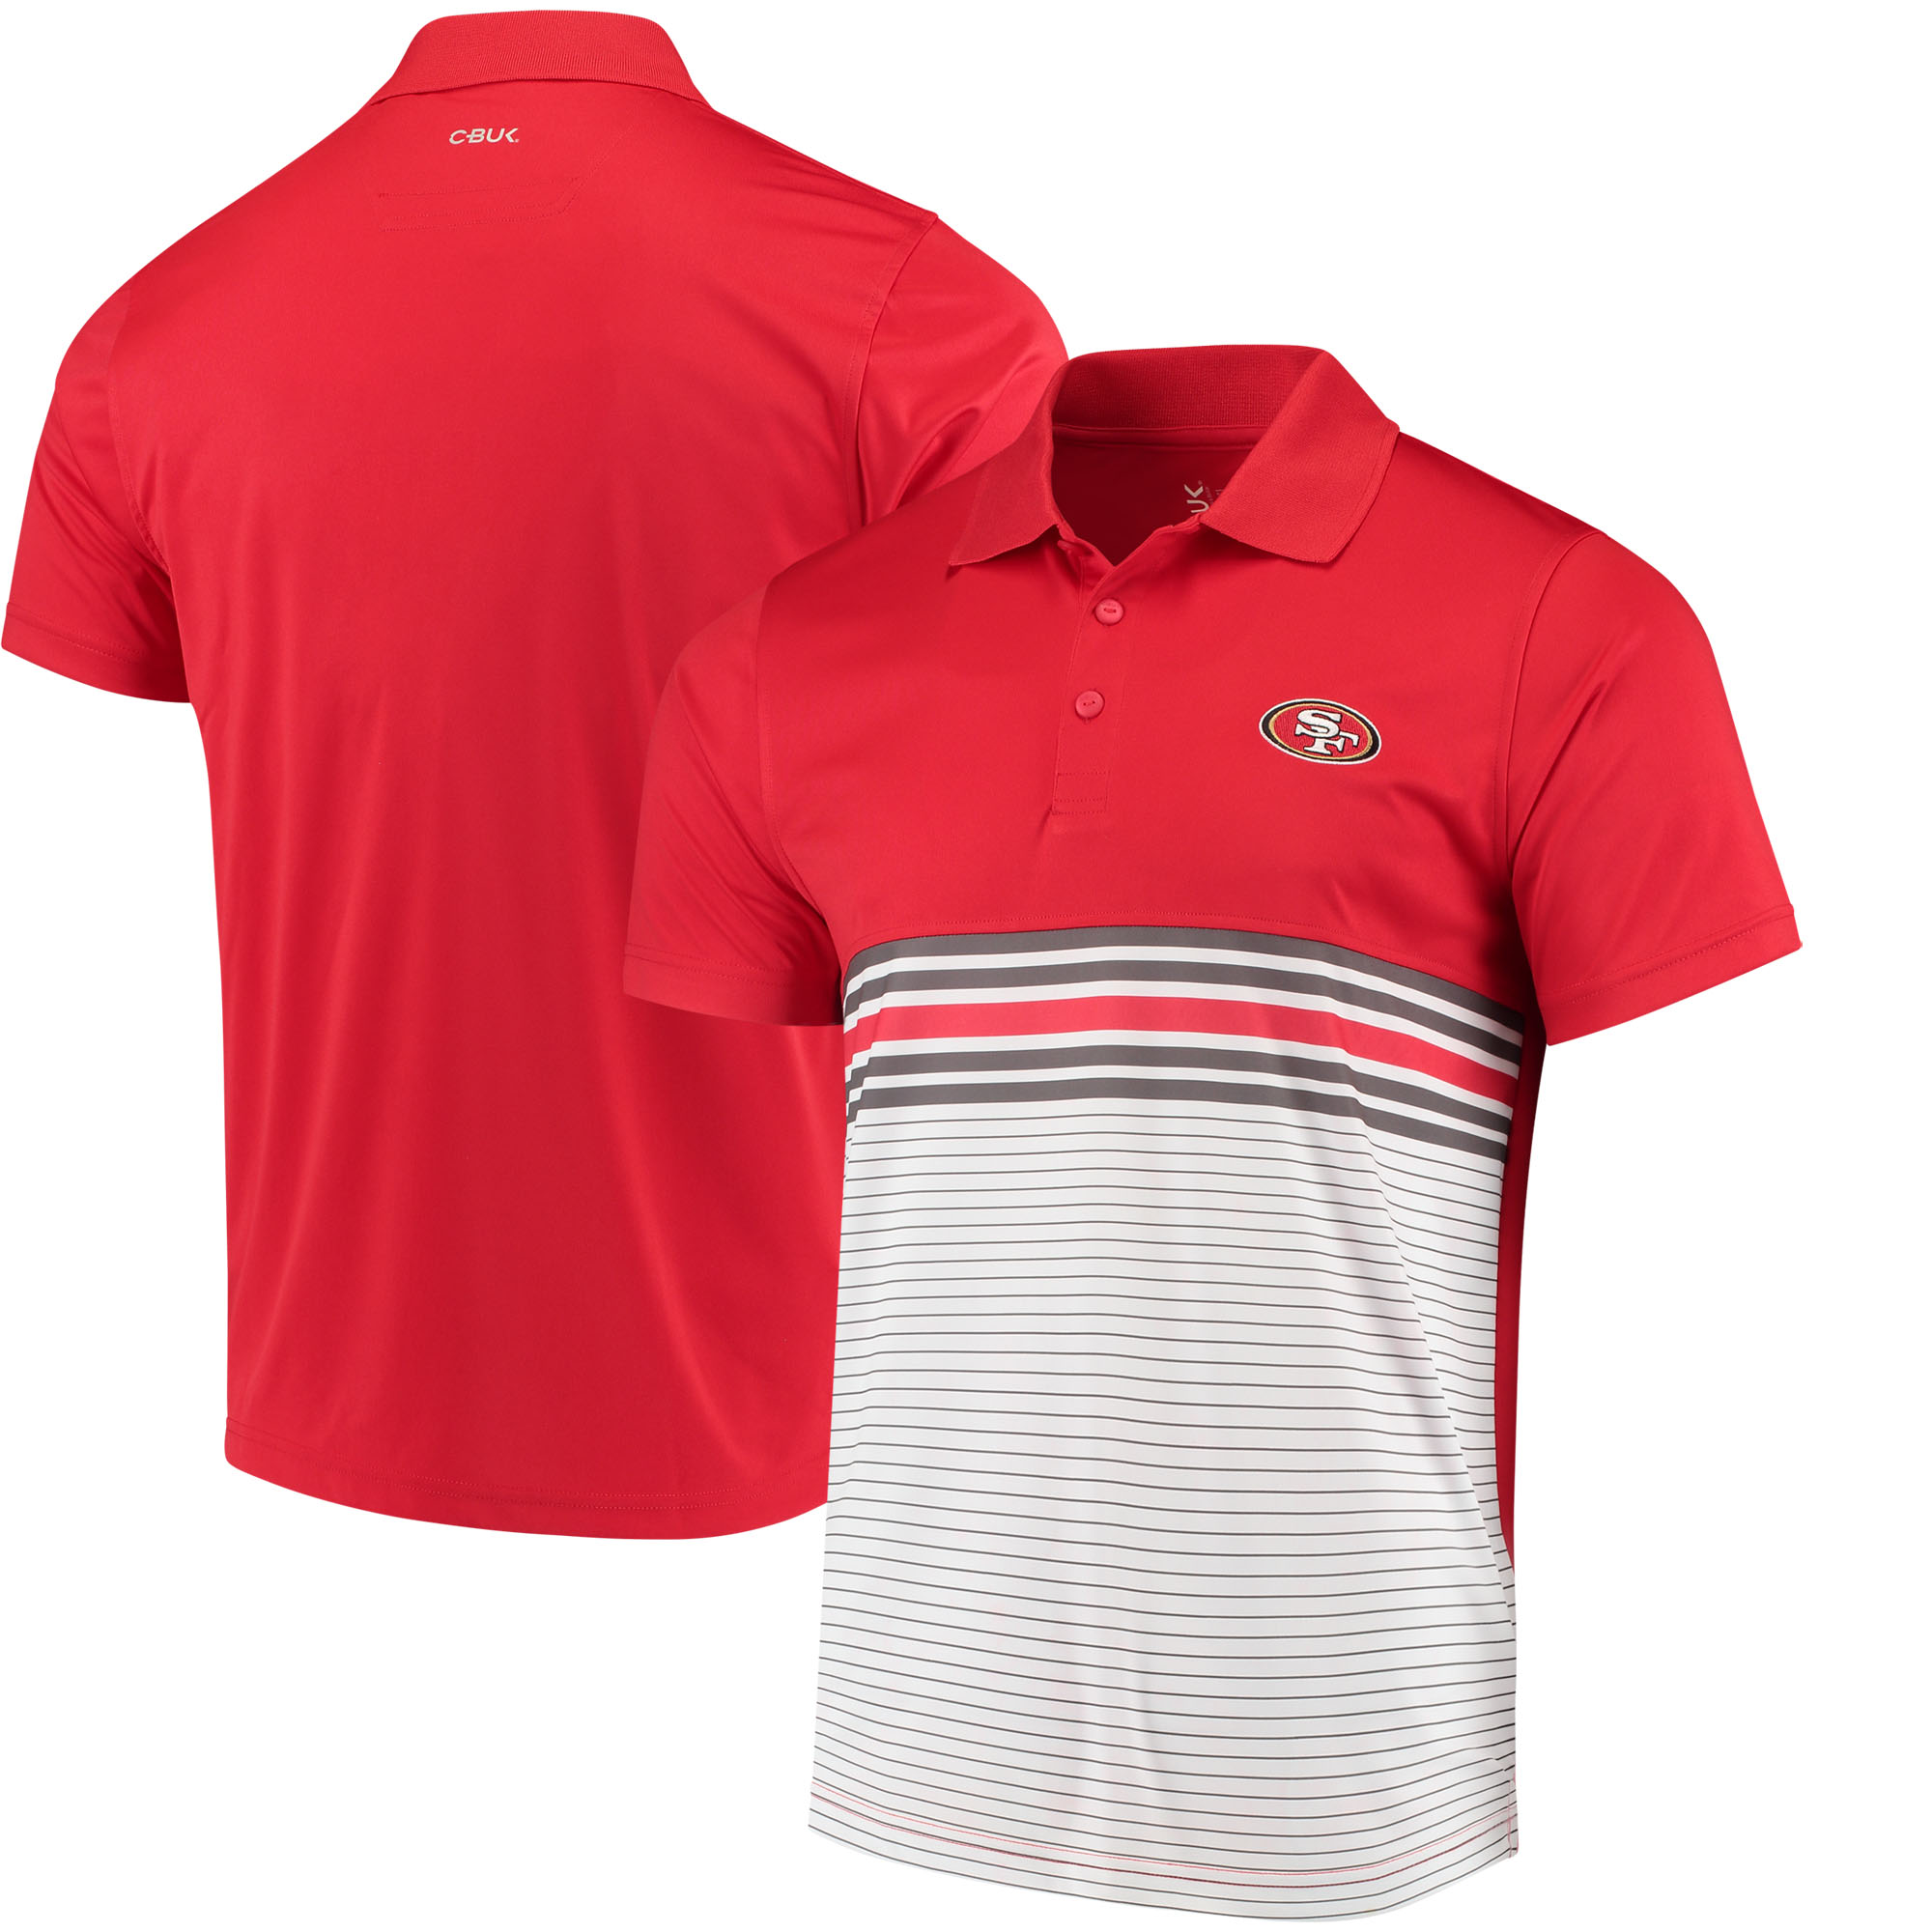 San Francisco 49ers CBUK by Cutter & Buck Heron Lakes Striped Polo - Scarlet